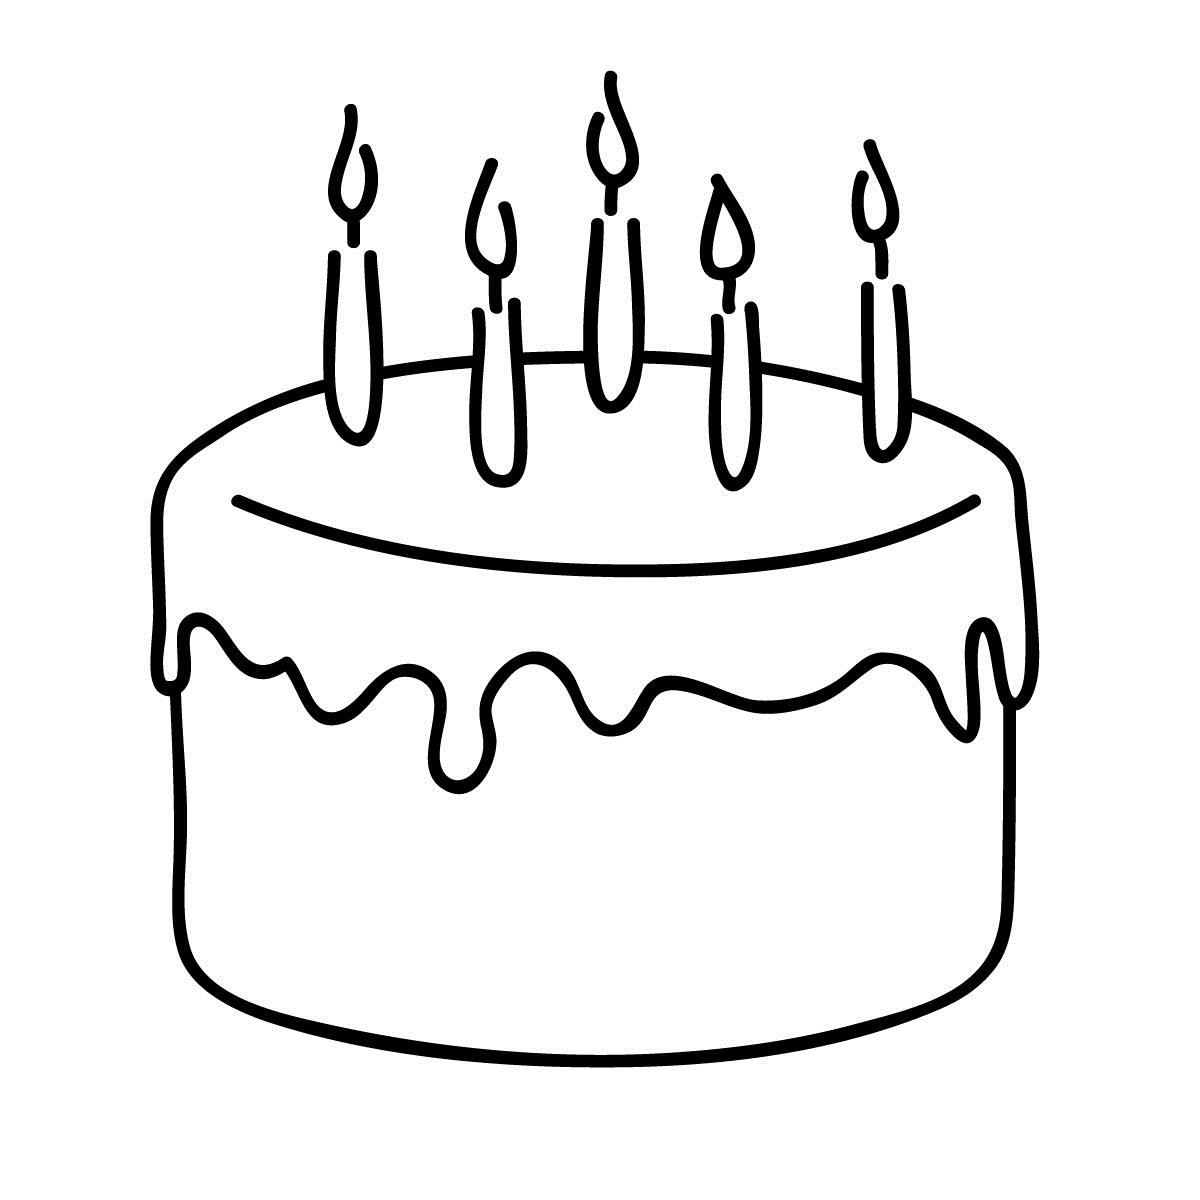 birthday cake print out ; white-birthday-cake-clipart-1